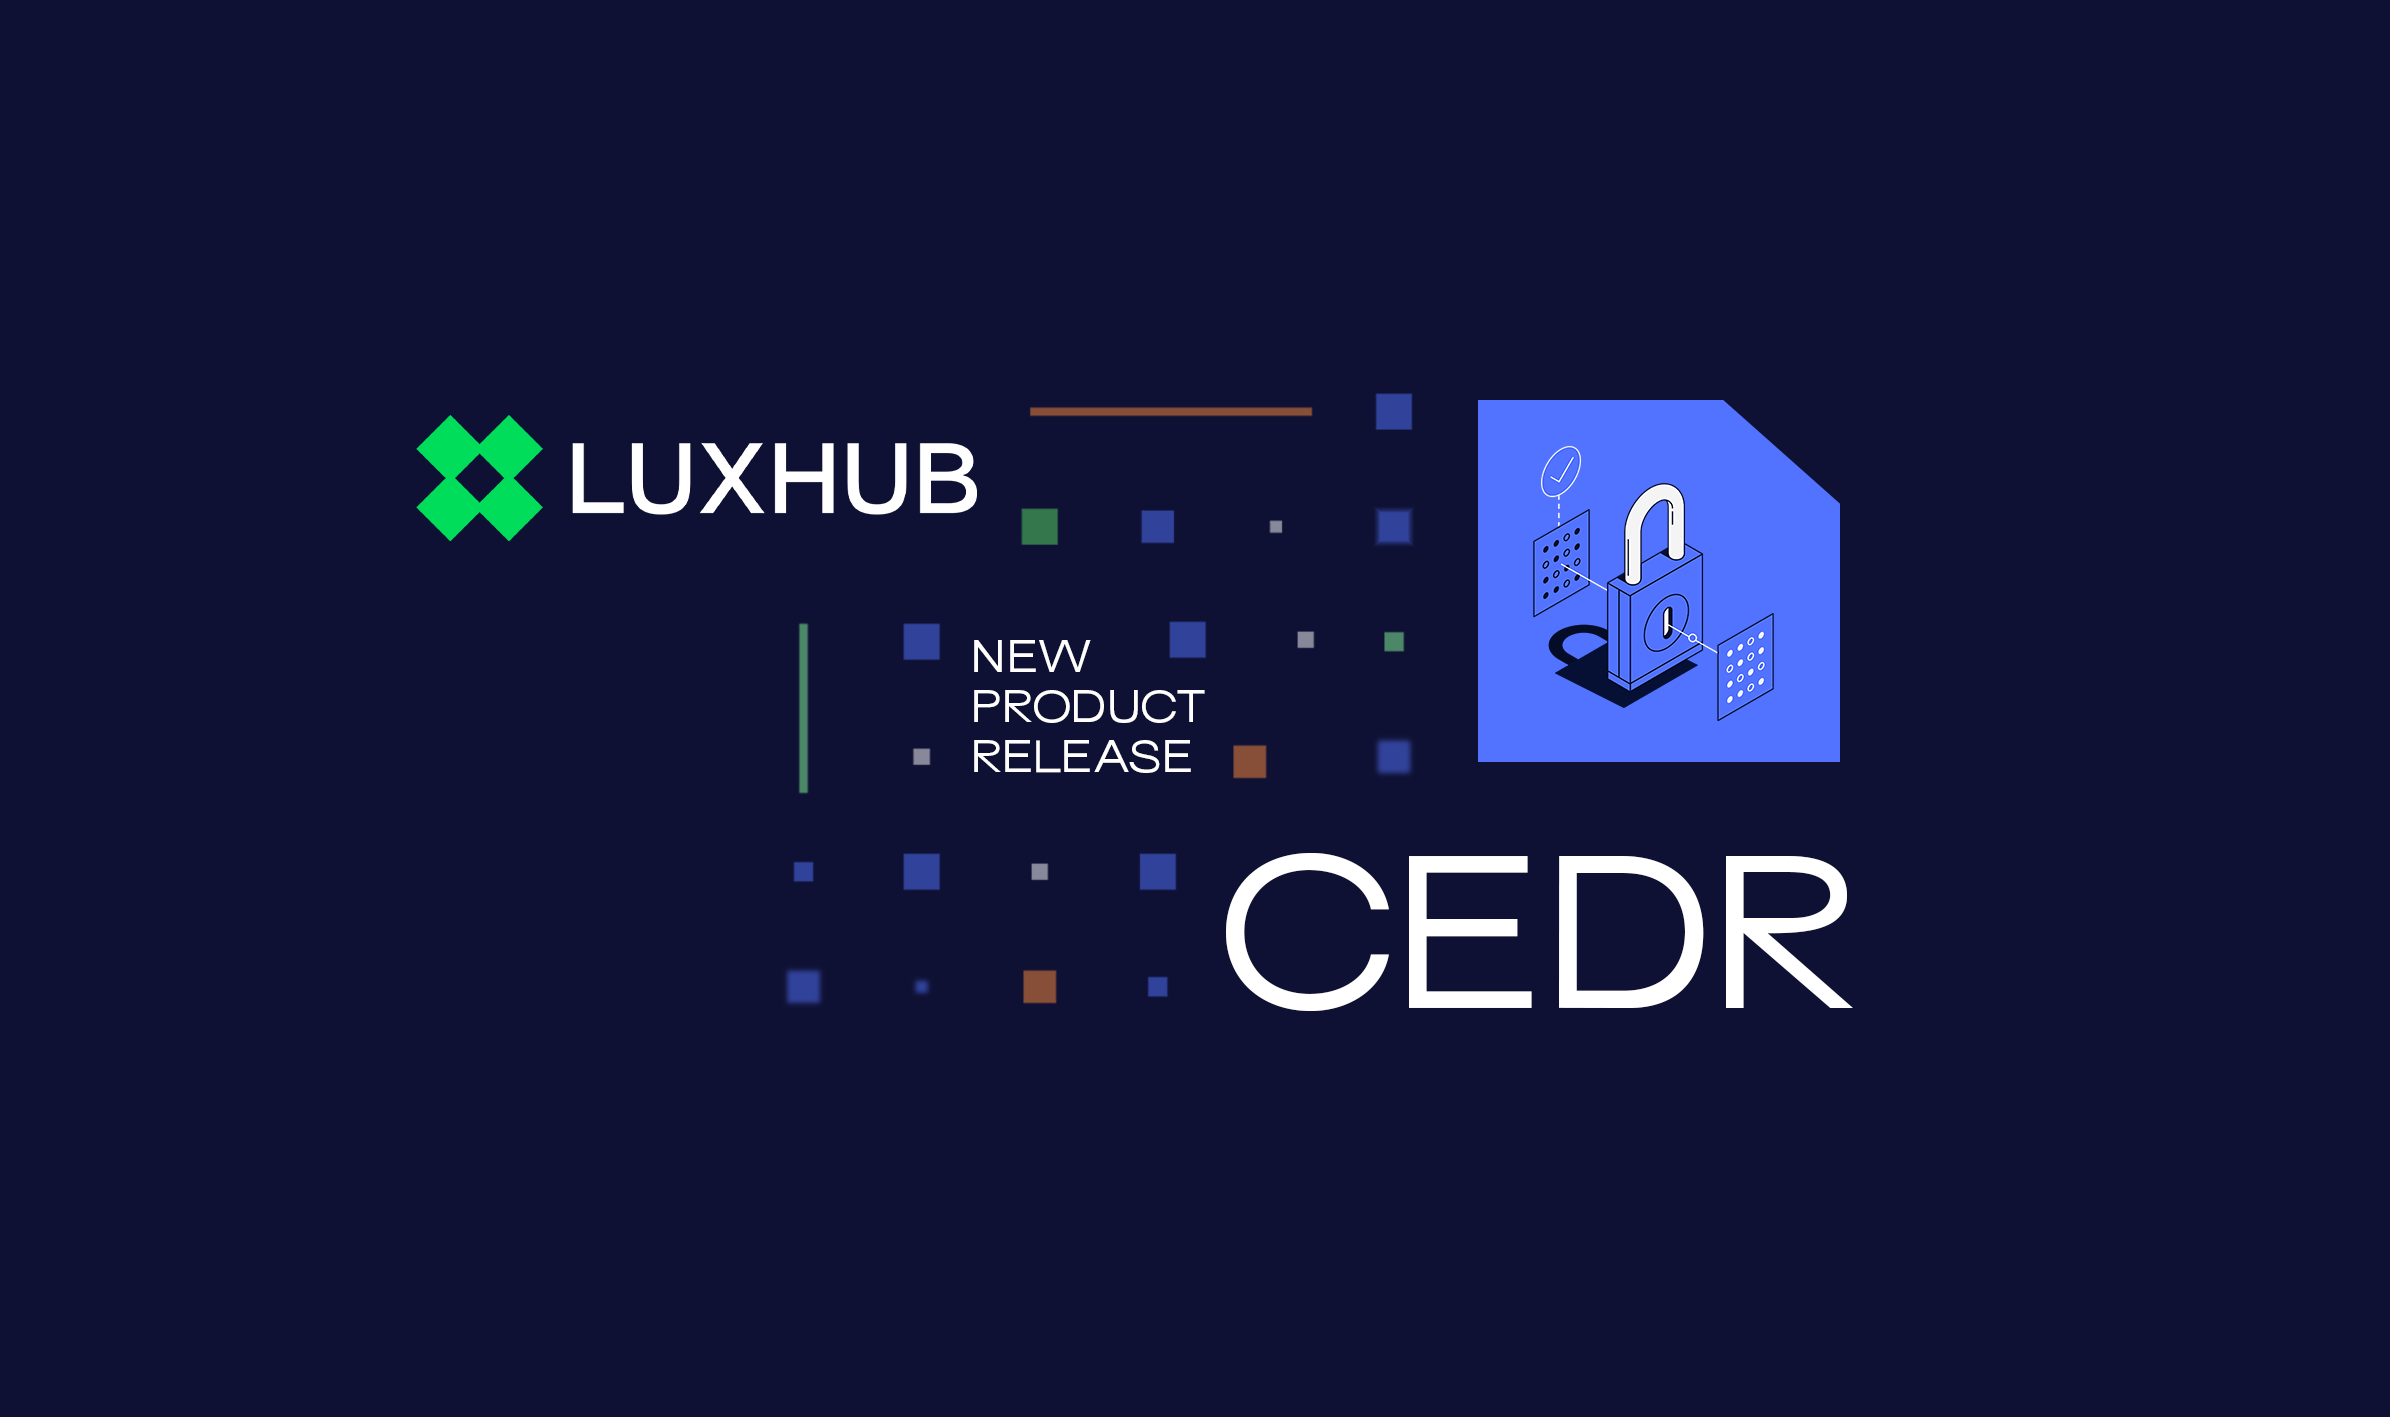 LUXHUB_CEDR_COMPIANCE_OPEN_BANKING_NEW